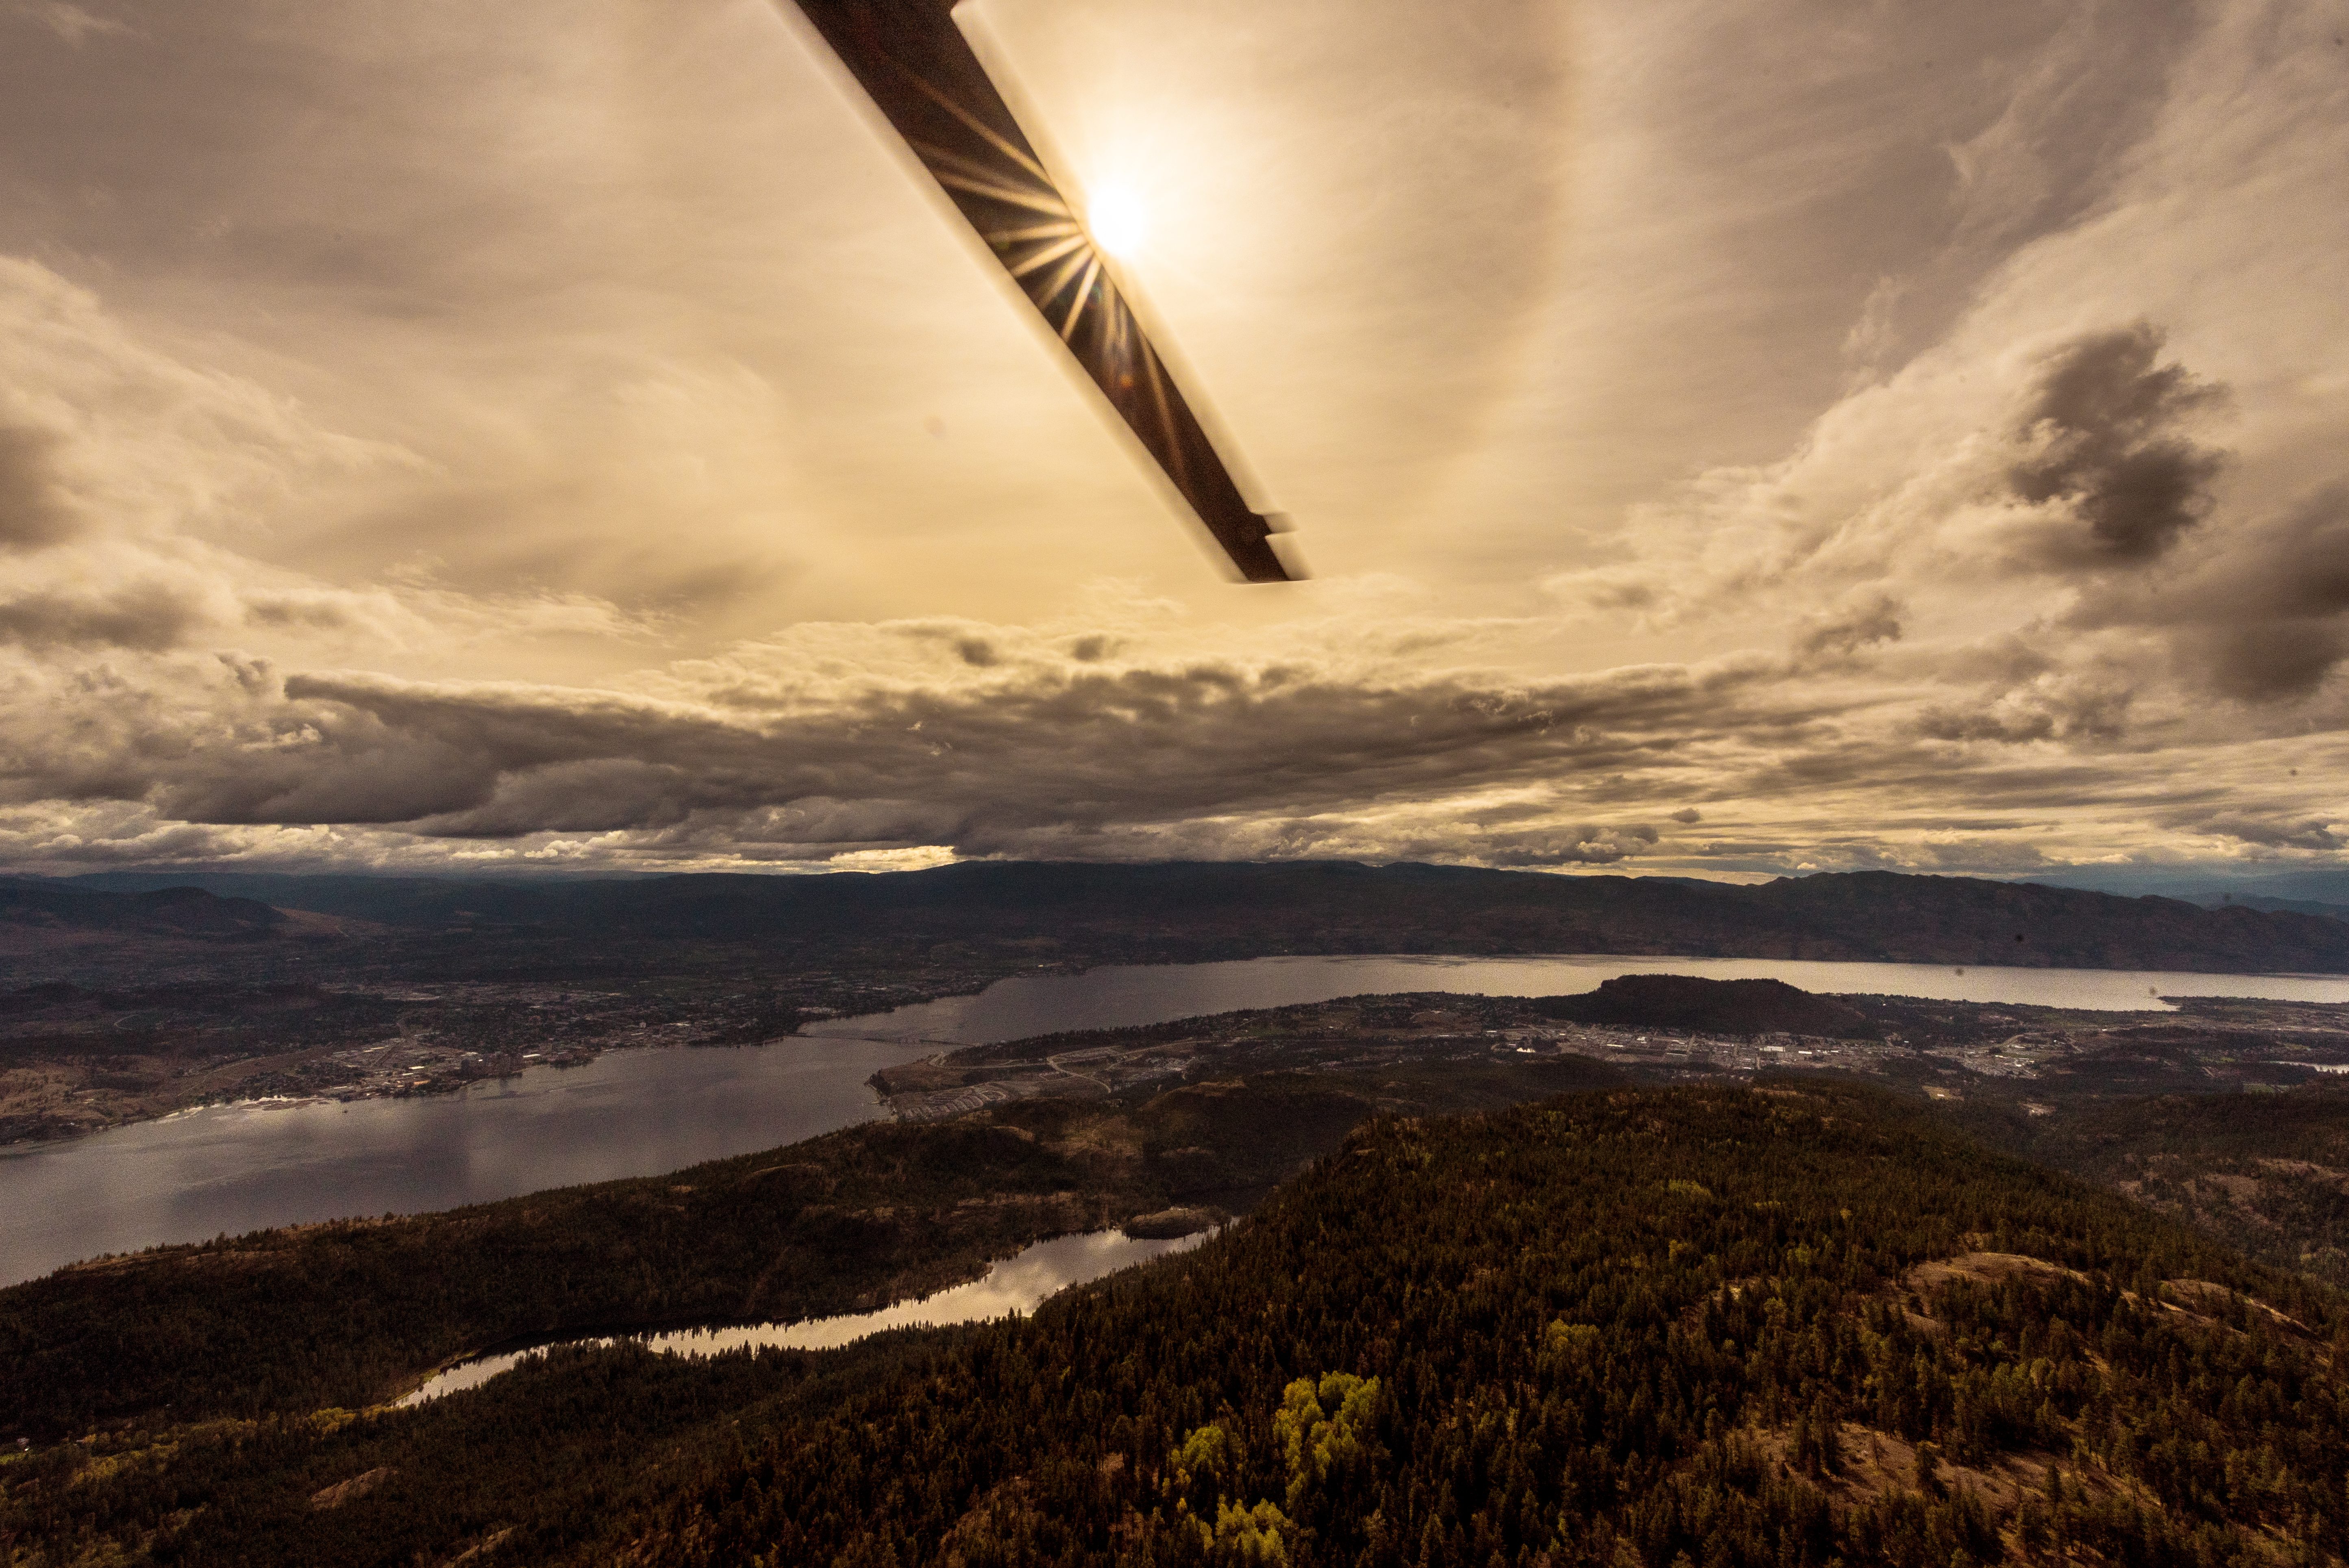 view of Kelowna from helicopter